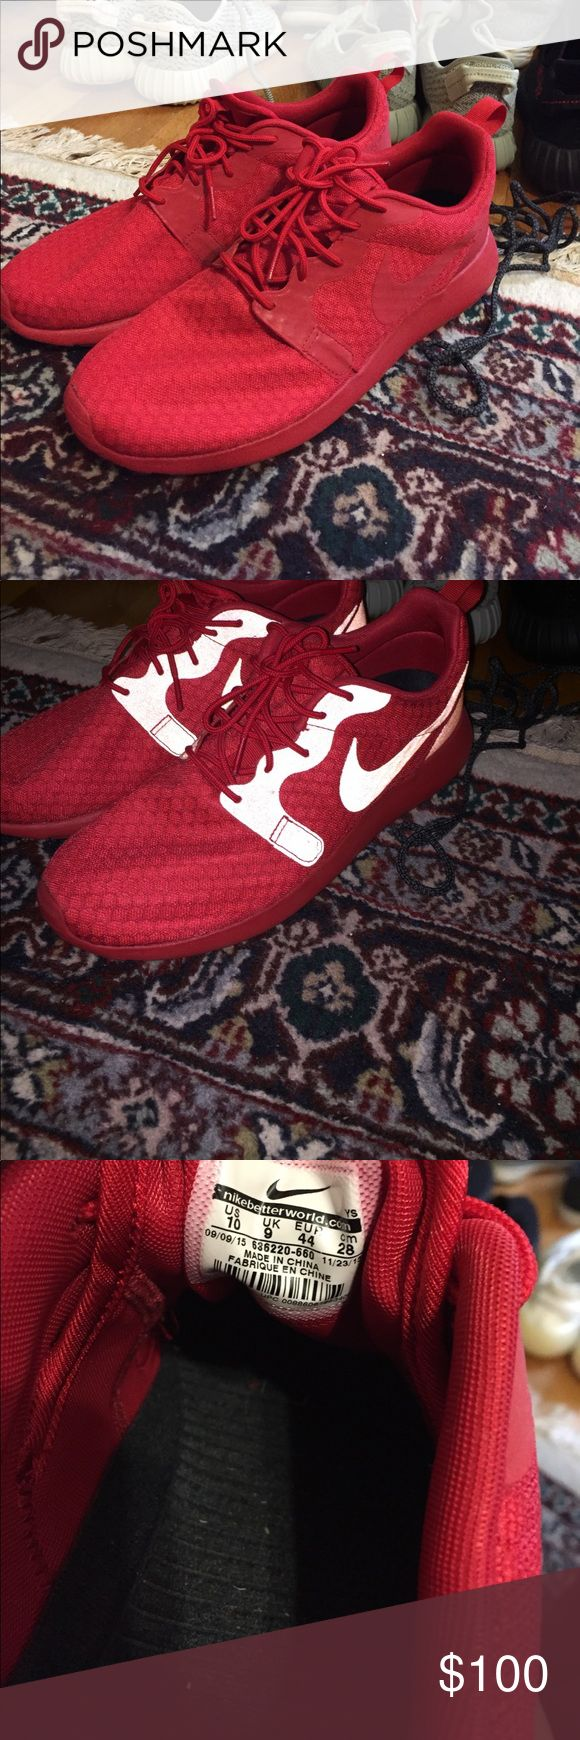 Nike Roshe One Hyperfuse University Red In perfect condition! Worn twice. If you want the red october colorway, but do not want to pay the extra money for Air Yeezy 2s this is the way to go. Nike Shoes Sneakers